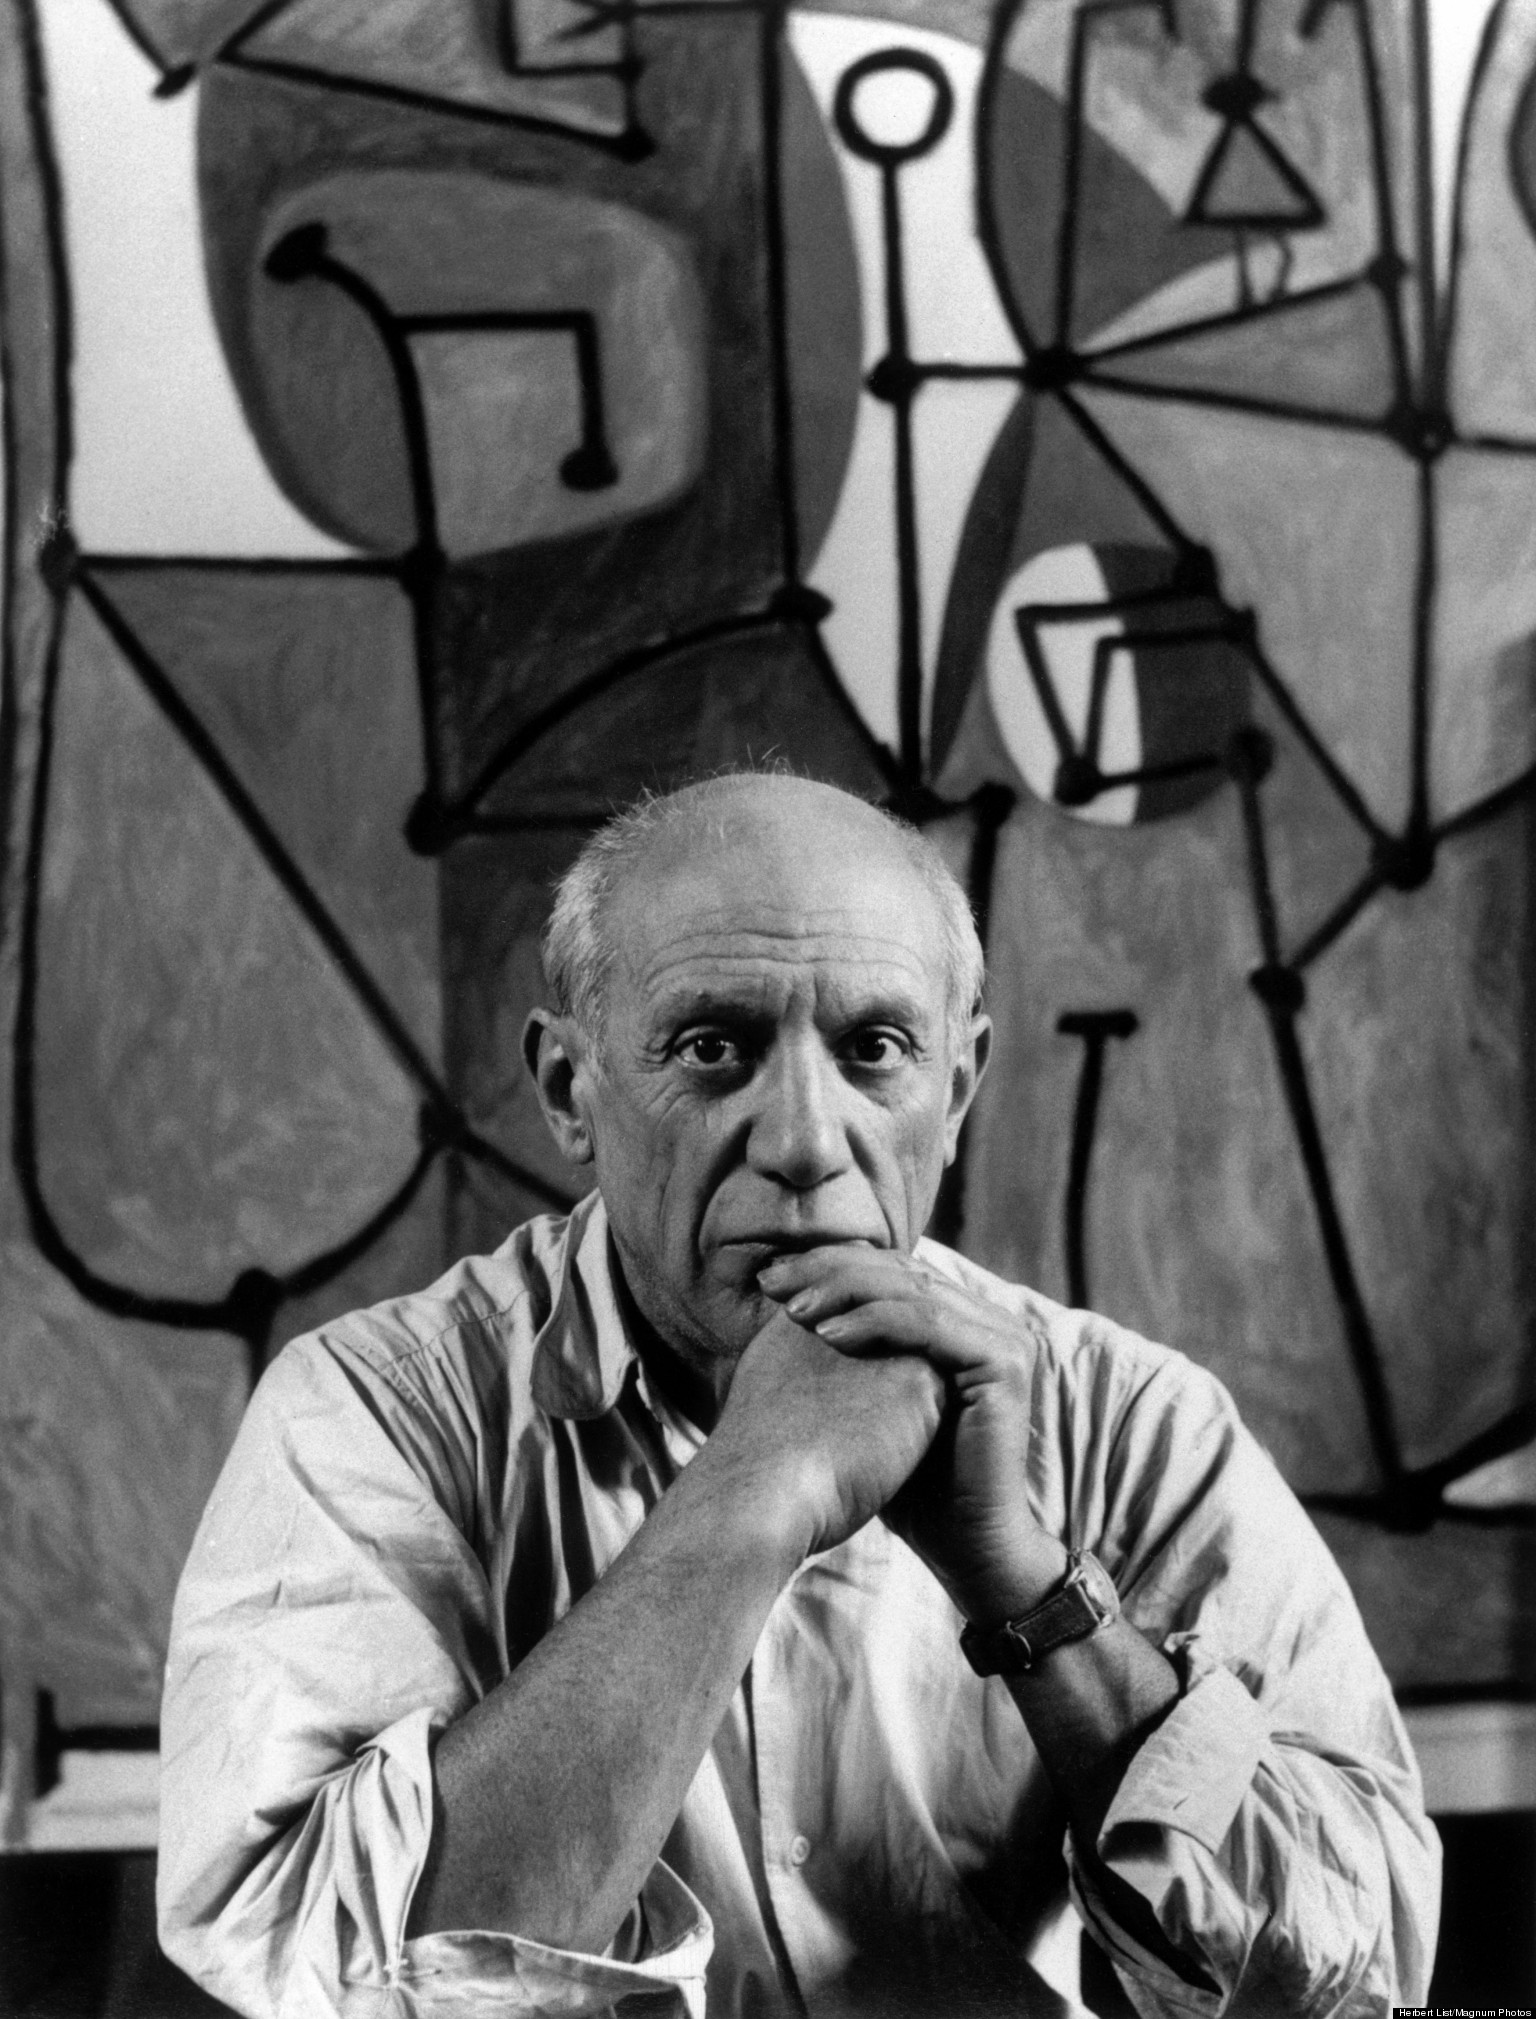 """FRANCE. Paris. Rue des Grands Augustins. Pablo PICASSO at his studio in front of """"La Cuisine"""". 1948. P-FR-PIC-003[lF][lF]Contact email: New York : photography@magnumphotos.com Paris : magnum@magnumphotos.fr London : magnum@magnumphotos.co.uk Tokyo : tokyo@magnumphotos.co.jp Contact phones: New York : +1 212 929 6000 Paris: + 33 1 53 42 50 00 London: + 44 20 7490 1771 Tokyo: + 81 3 3219 0771 Image URL: https://www.magnumphotos.com/Archive/C.aspx?VP3=ViewBox_VPage&IID=2S5RYD21HSI&CT=Image&IT=ZoomImage01_VForm"""